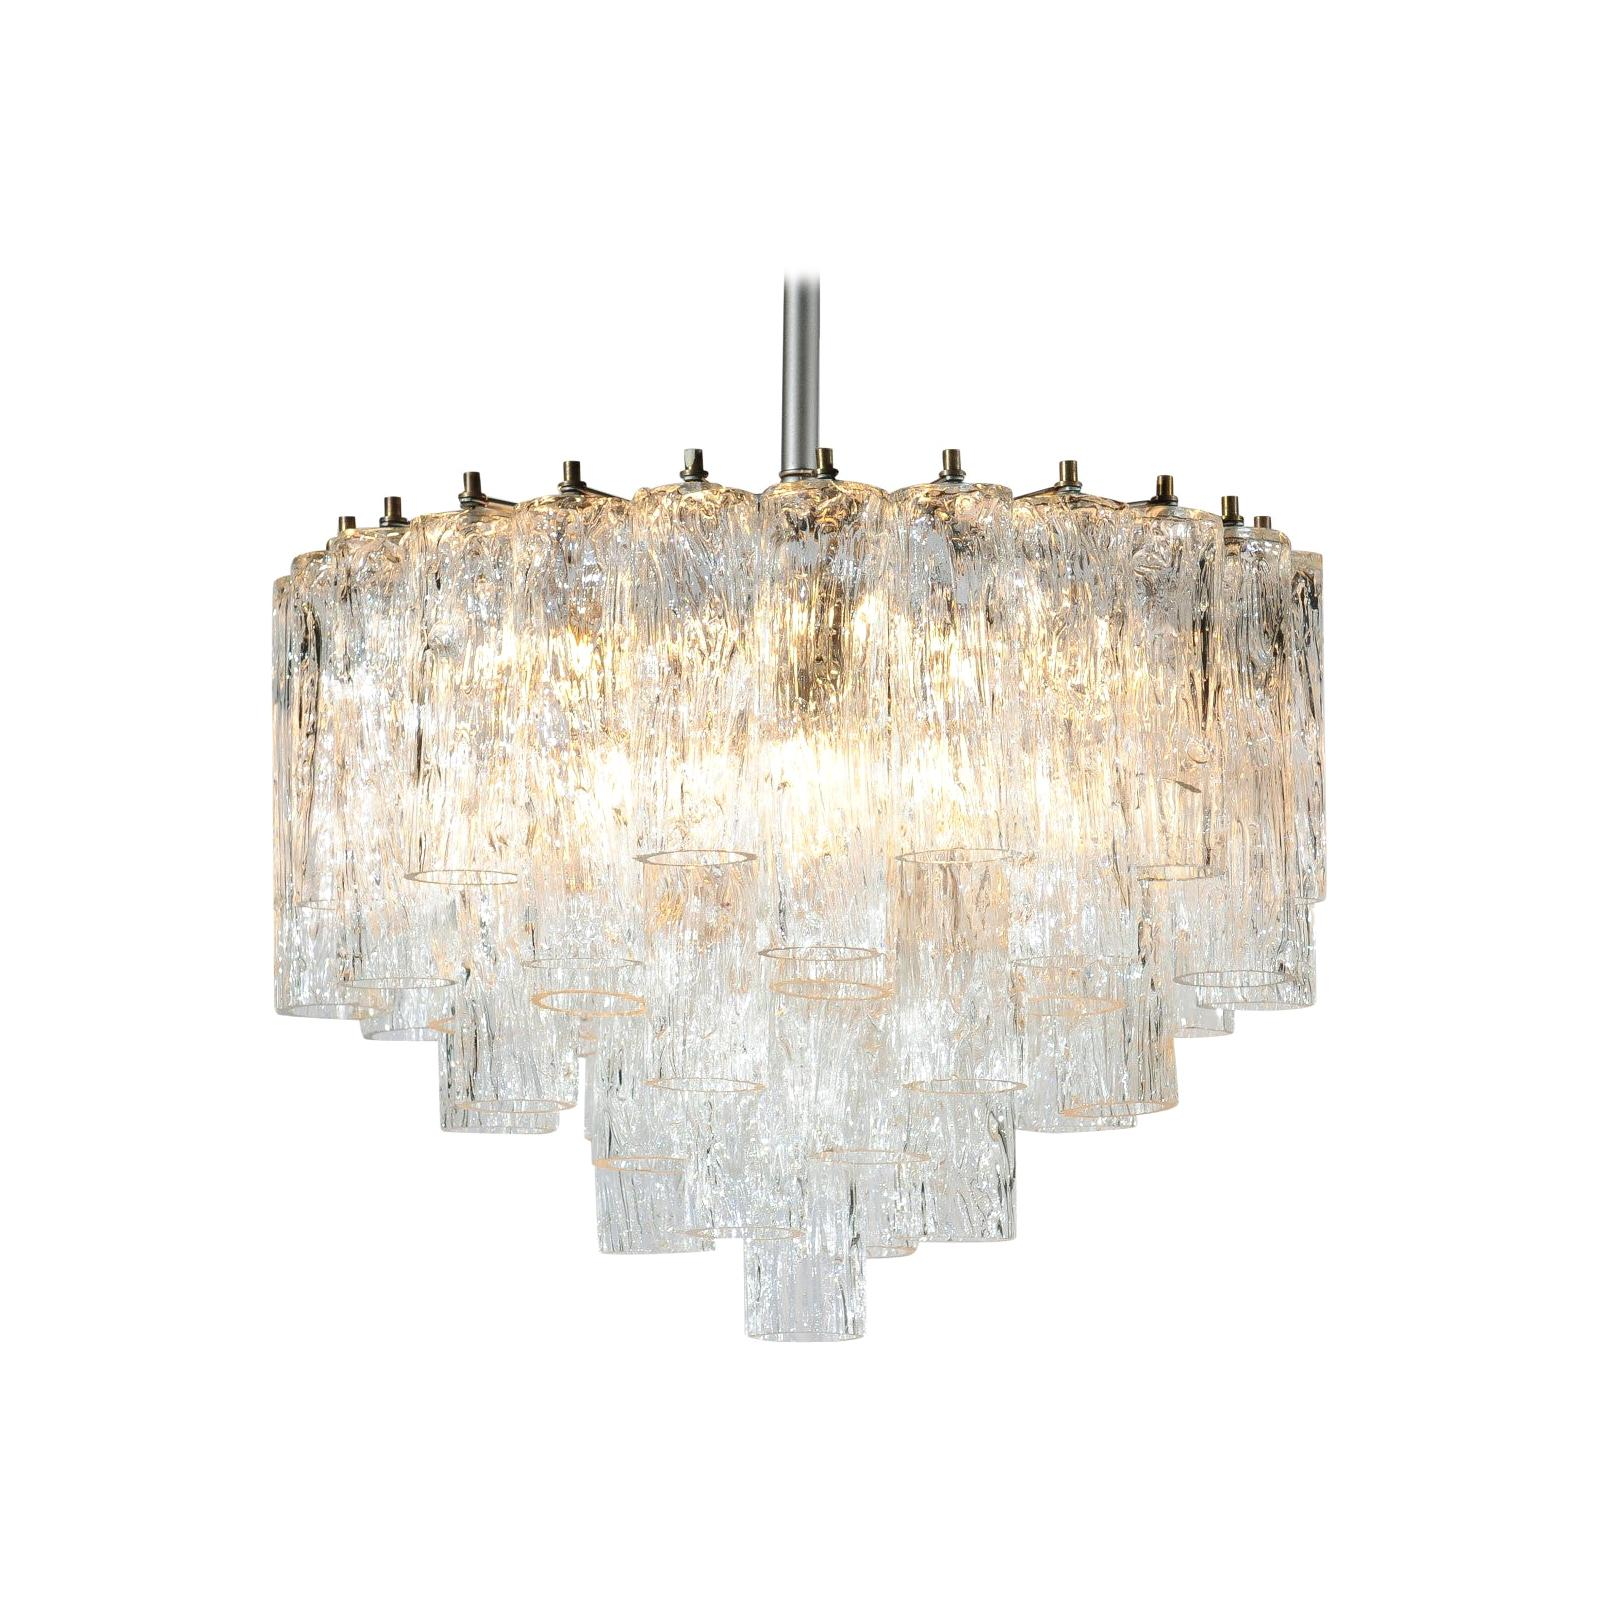 Venini Murano Glass Tronchi Midcentury Chandelier with Cascading Structure